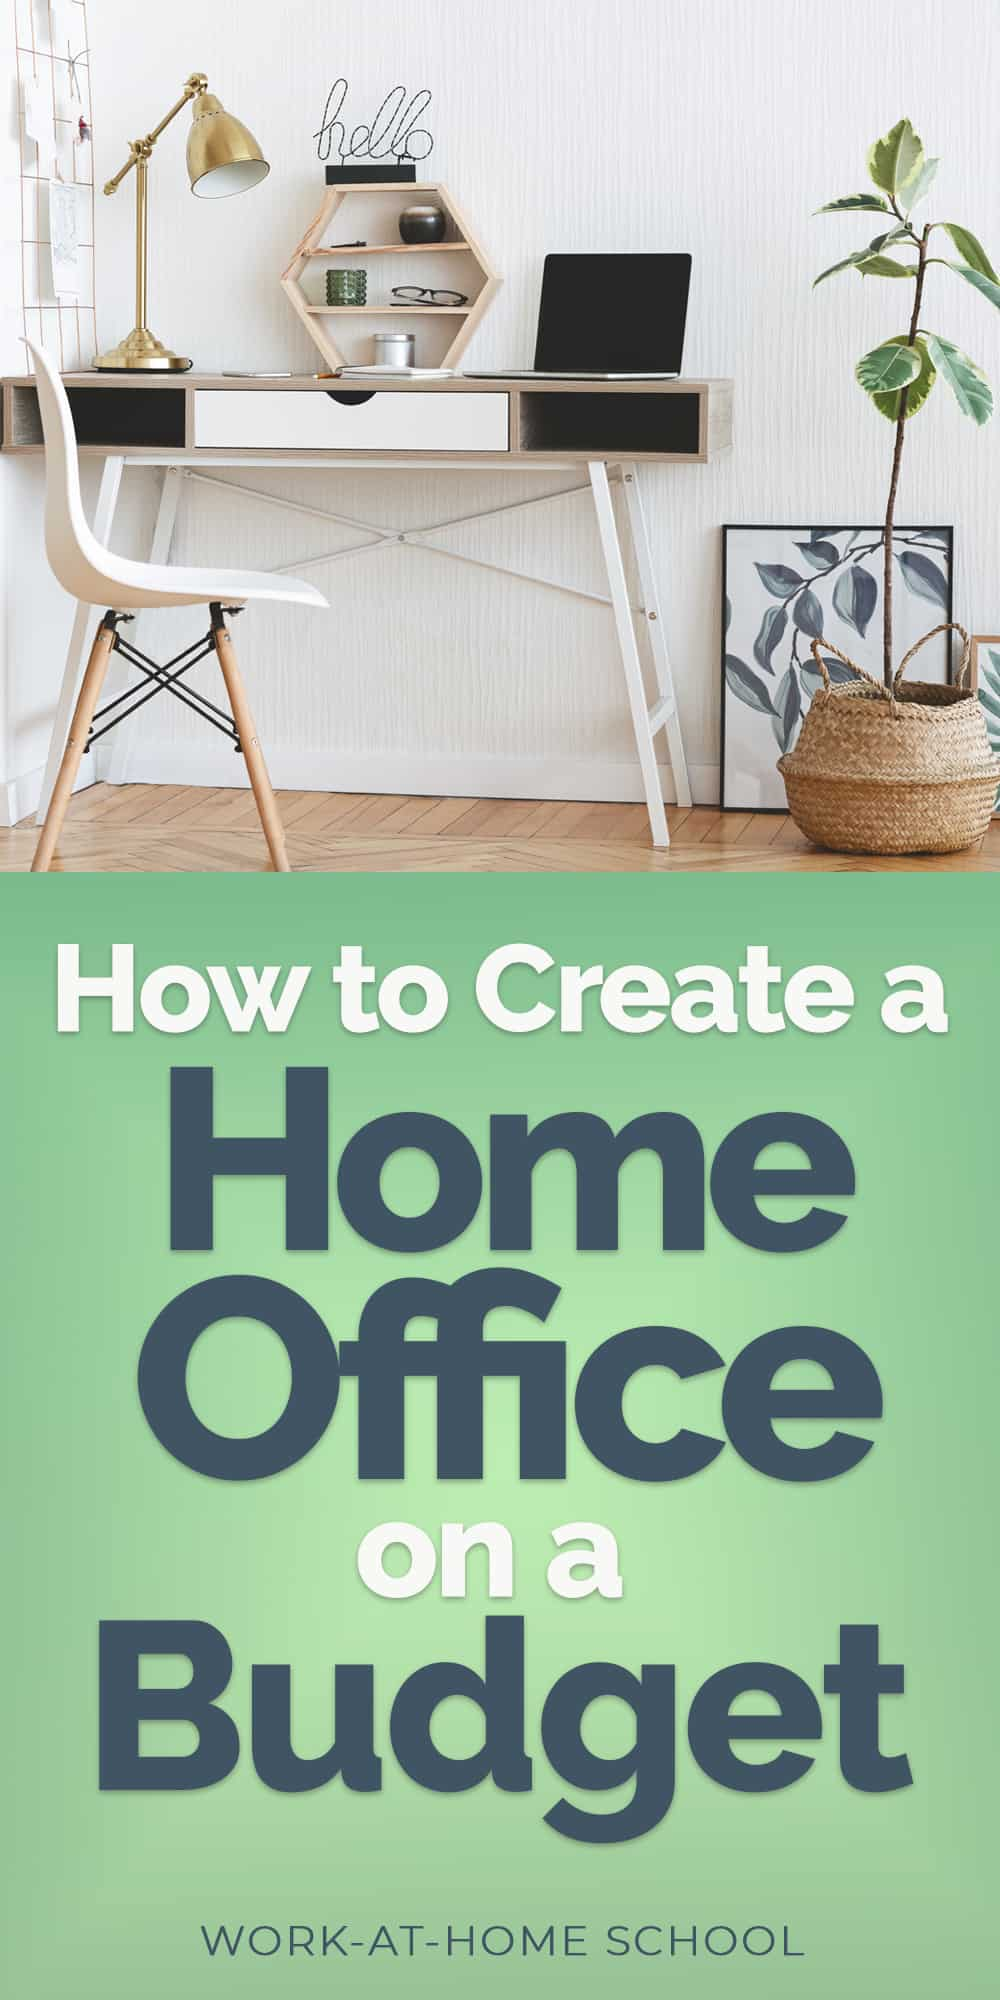 These tips will help you create a home office on a budget so you stay focused and productive.